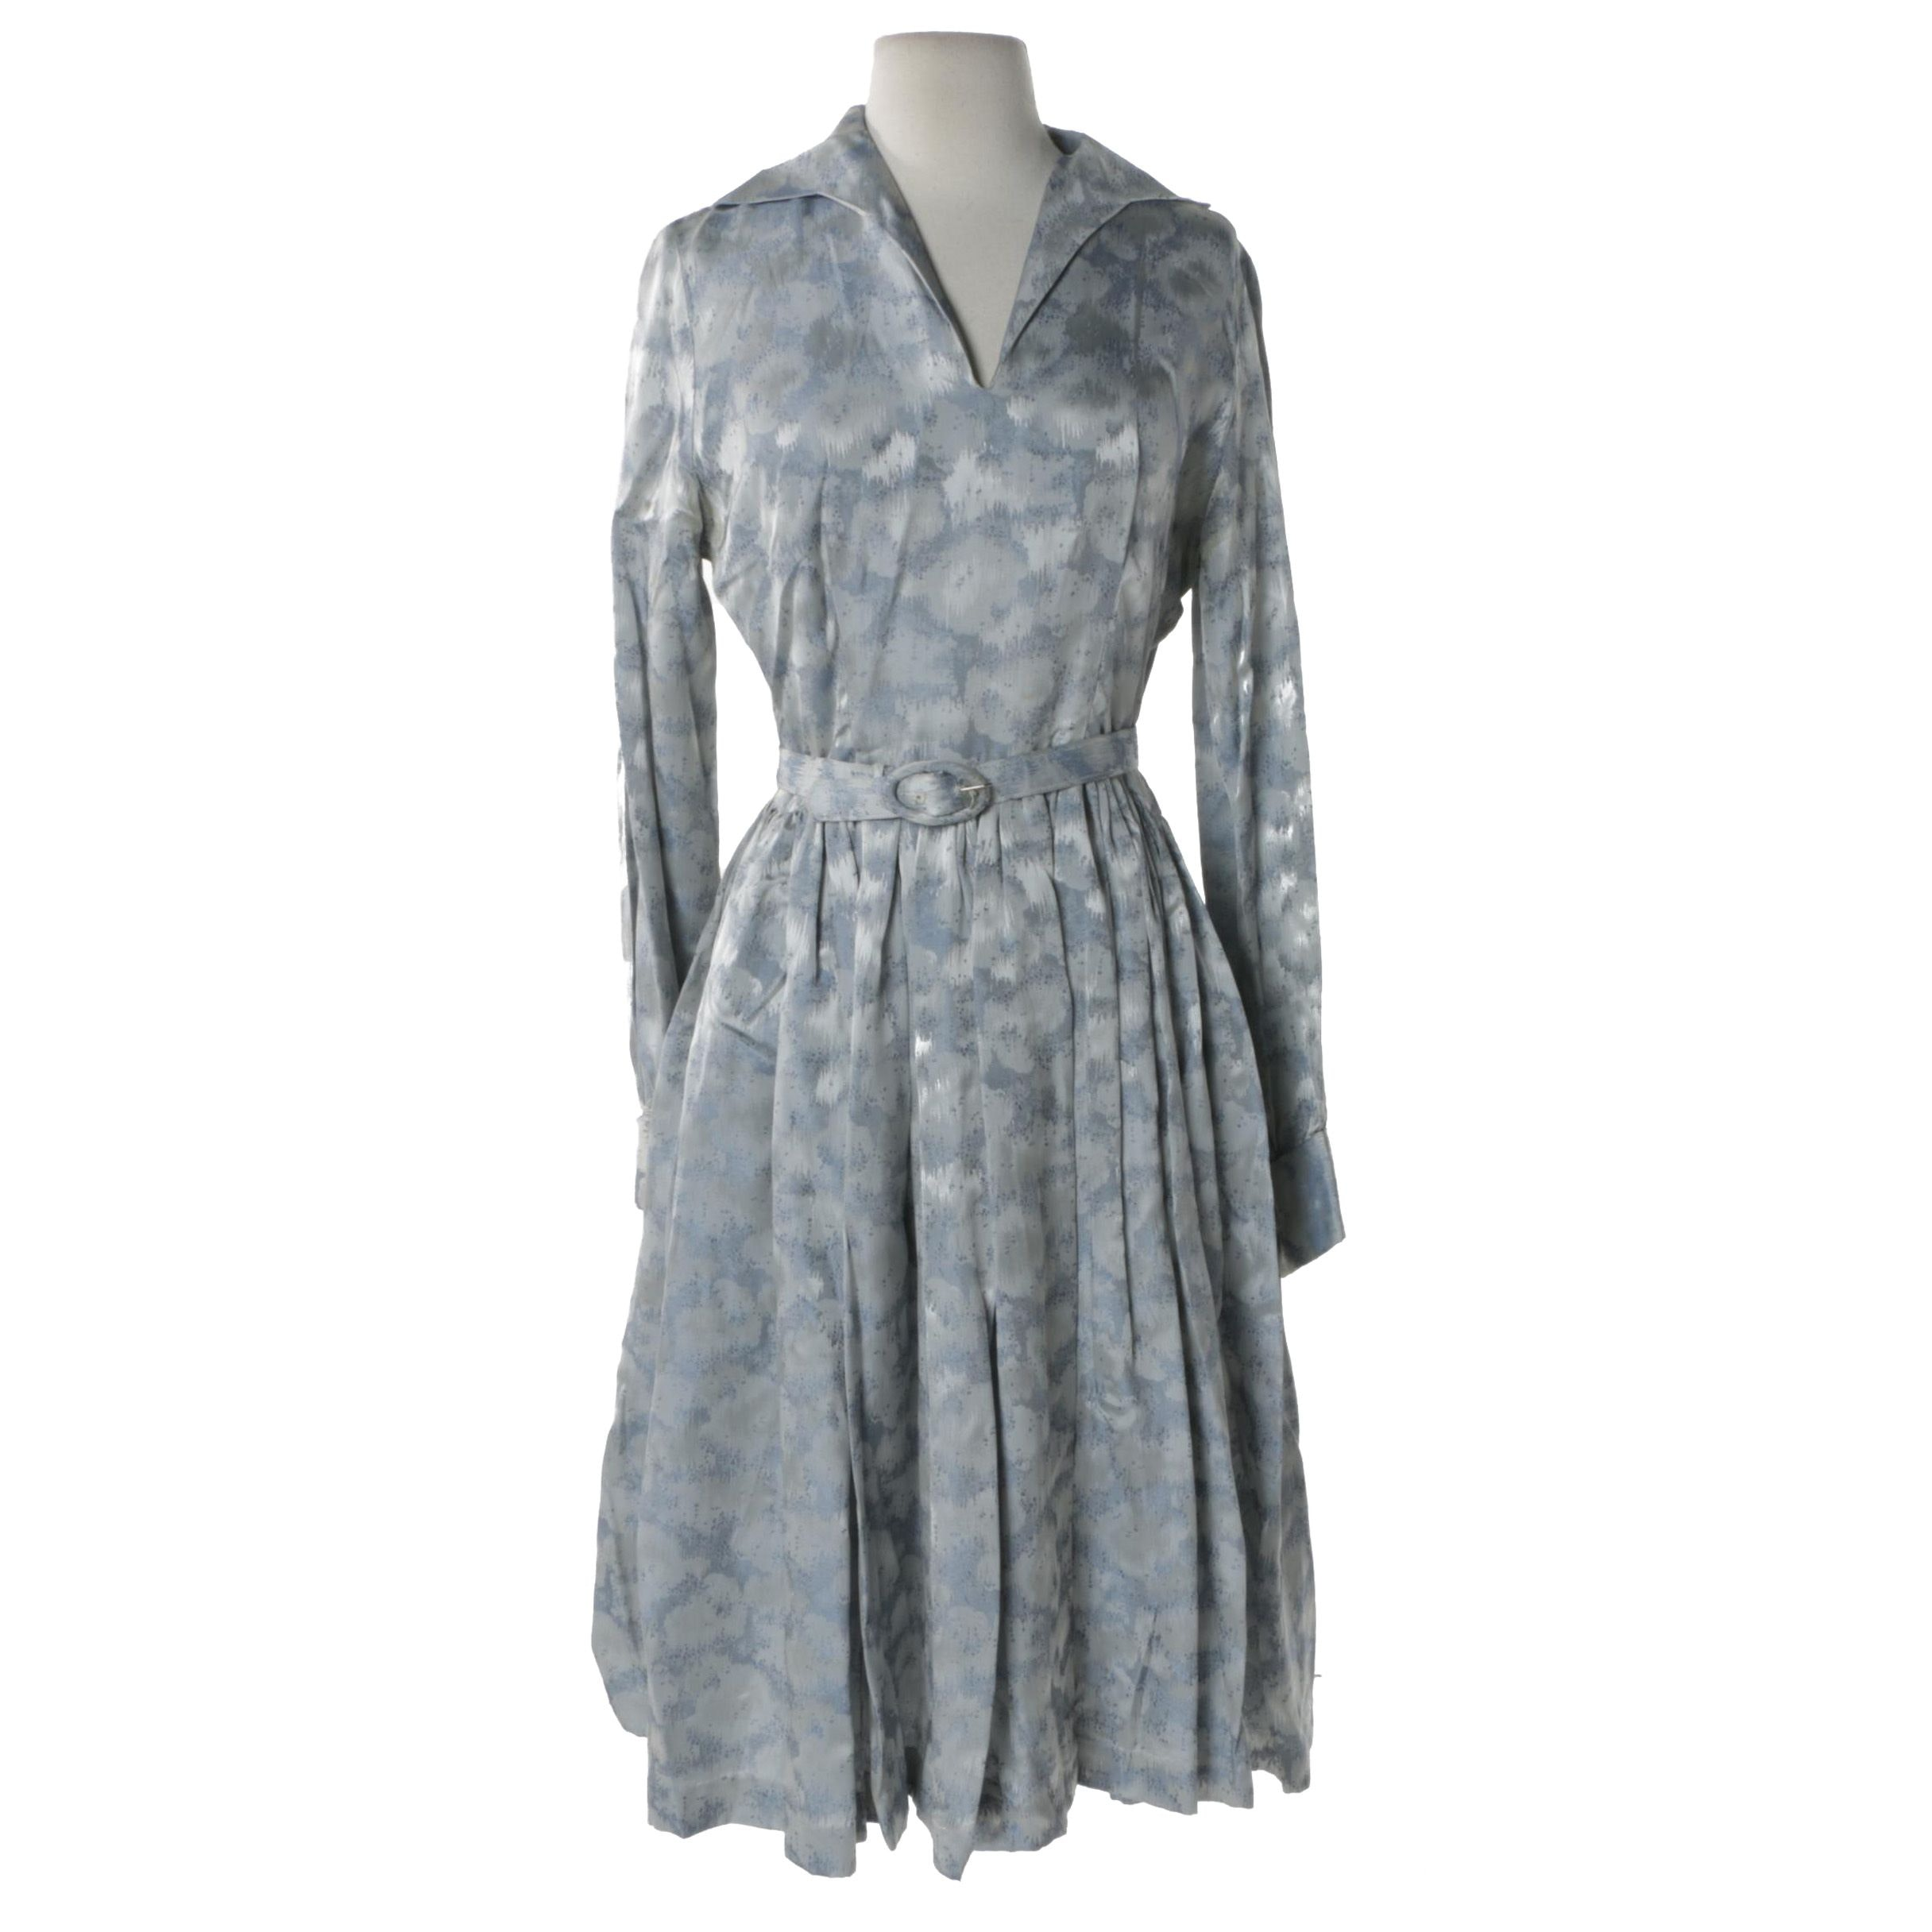 Circa 1950s Vintage Blue Jacquard Belted Dress